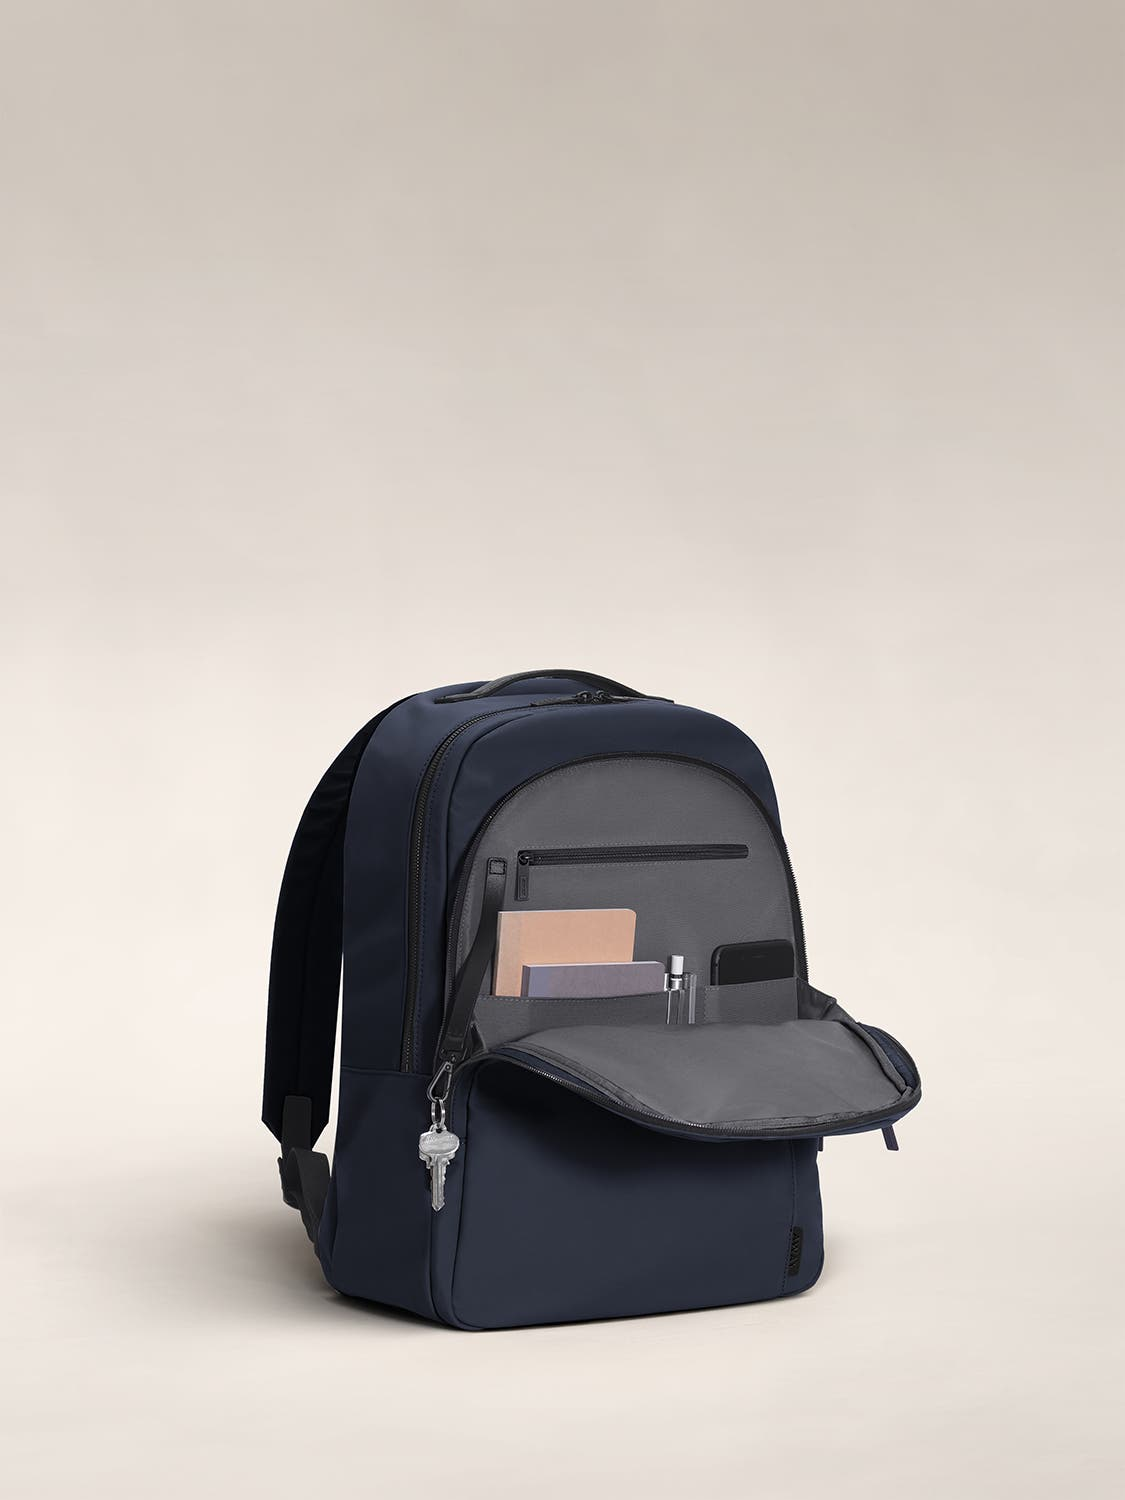 Open front flap of a blue backpack with organized pockets shown with notebooks.